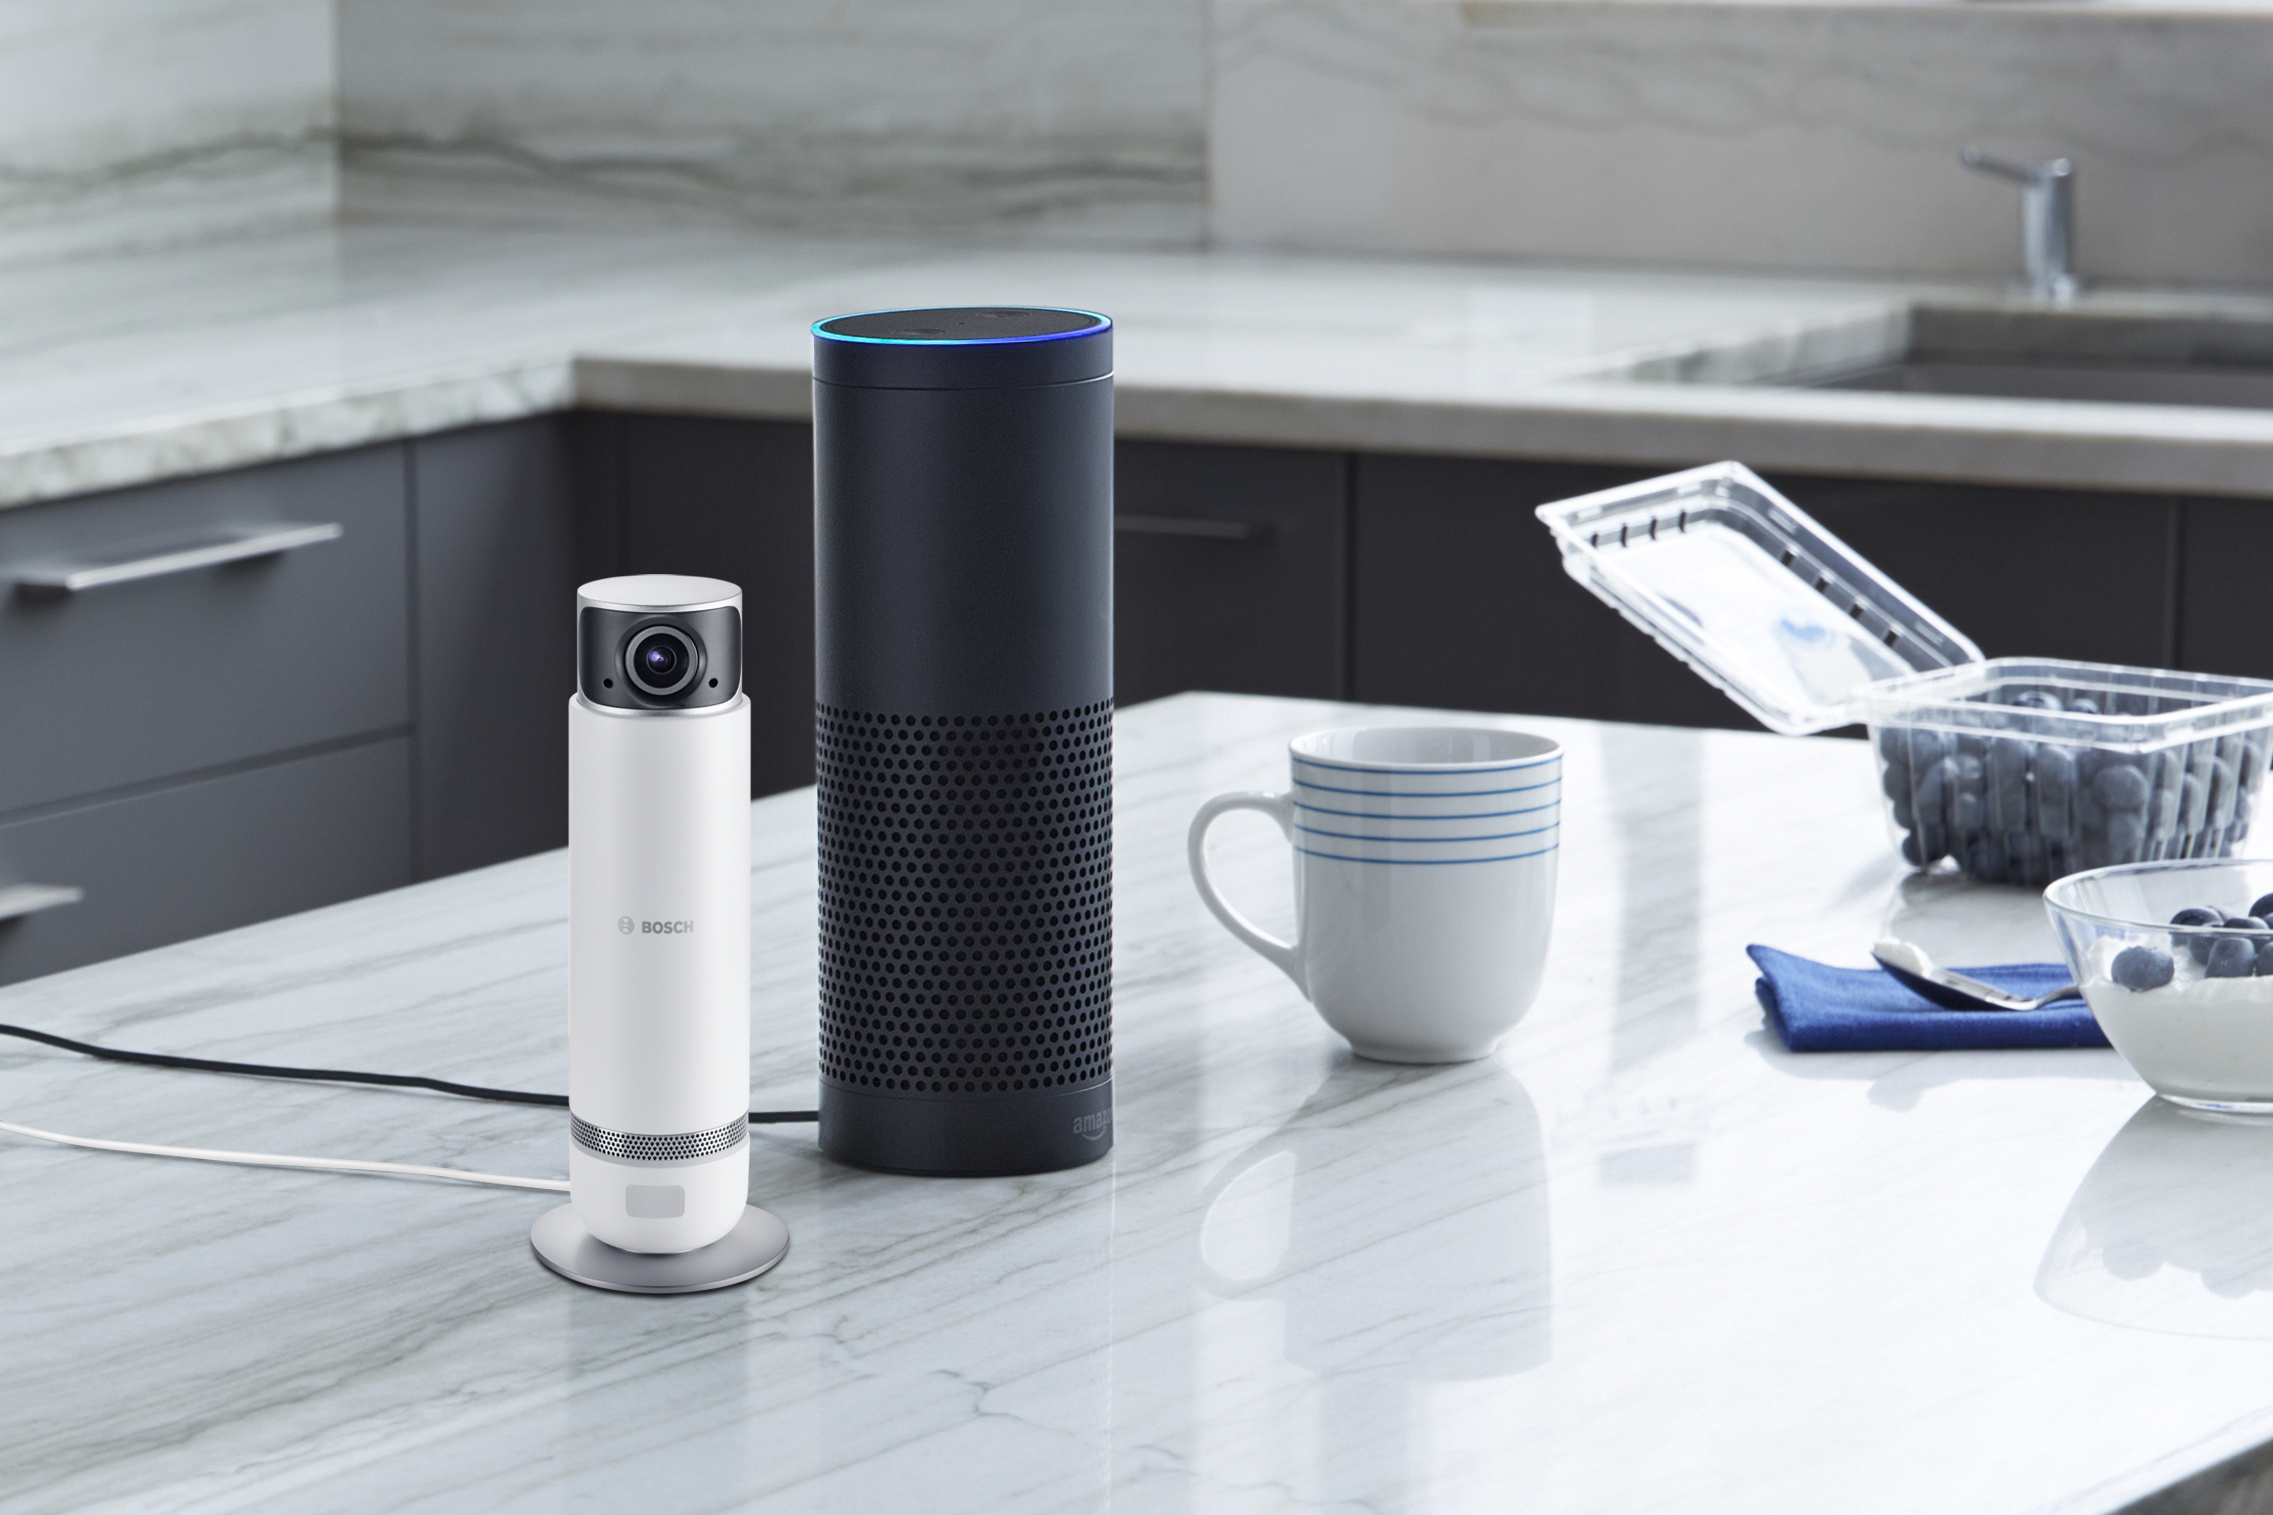 Voice control with Alexa